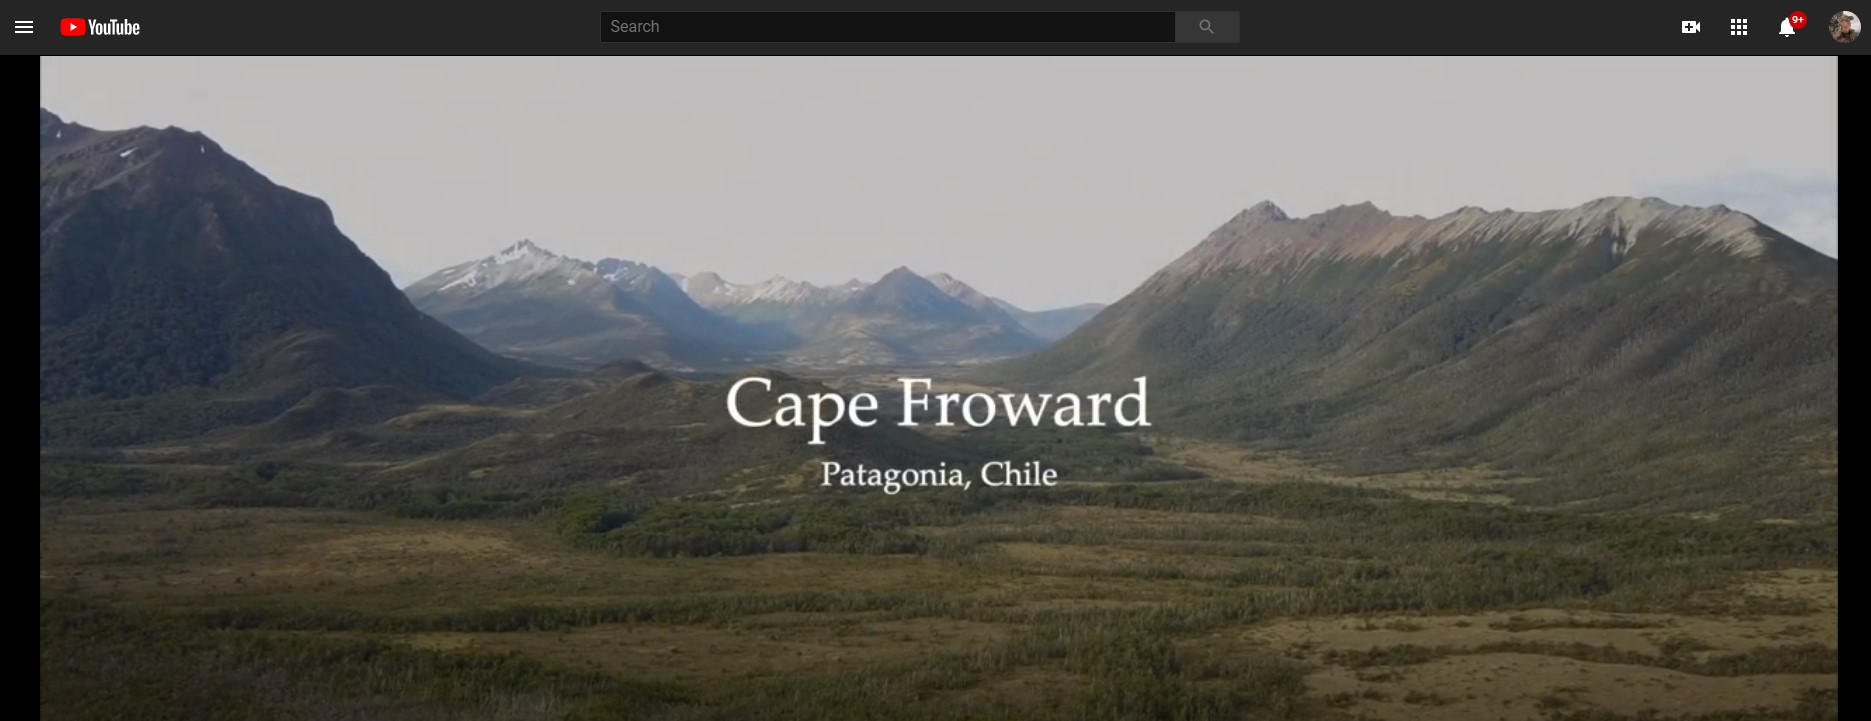 Video of Cape Froward Chile